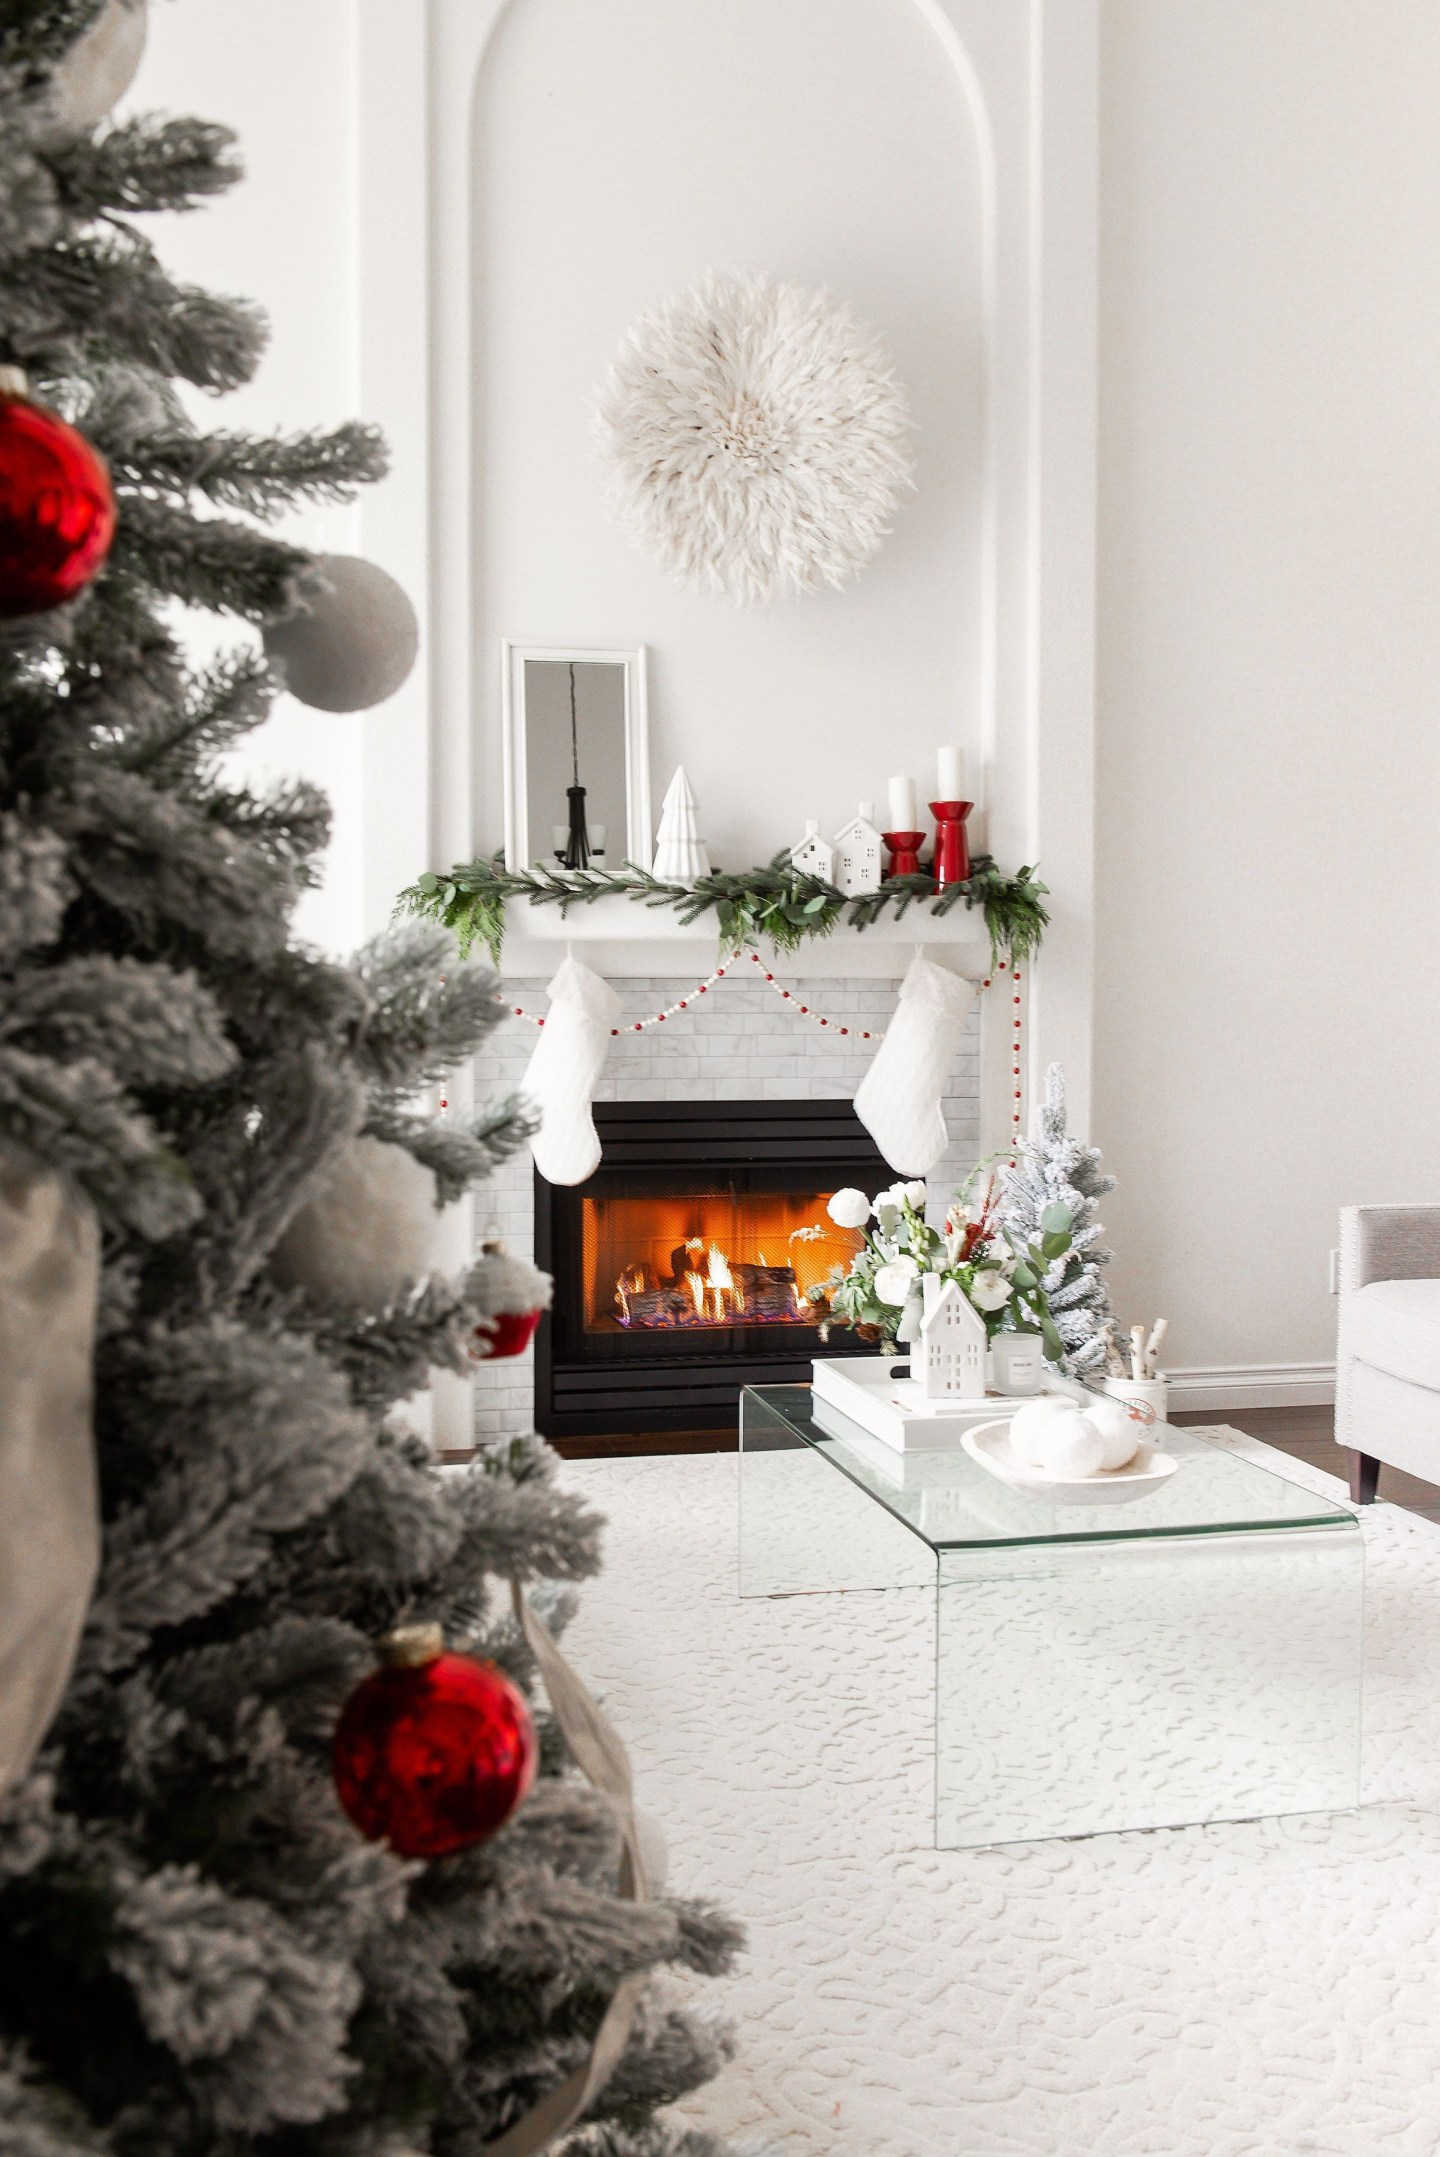 and I'm excited to share My Classic Christmas Mantel with White and Red!